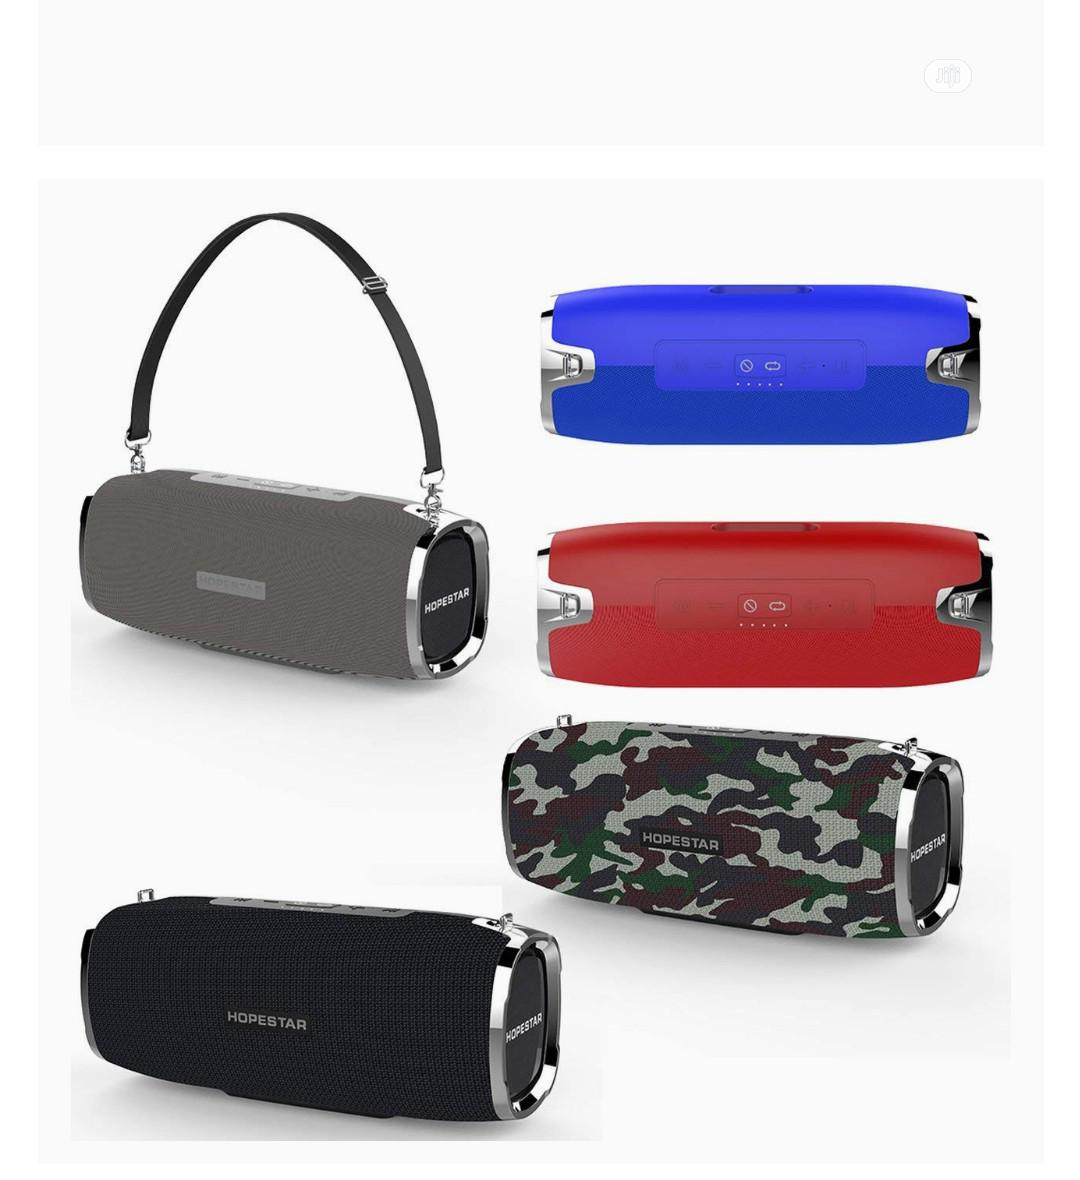 HOPESTAR A6 Wireless Portable Bluetooth Speaker | Audio & Music Equipment for sale in Ikeja, Lagos State, Nigeria